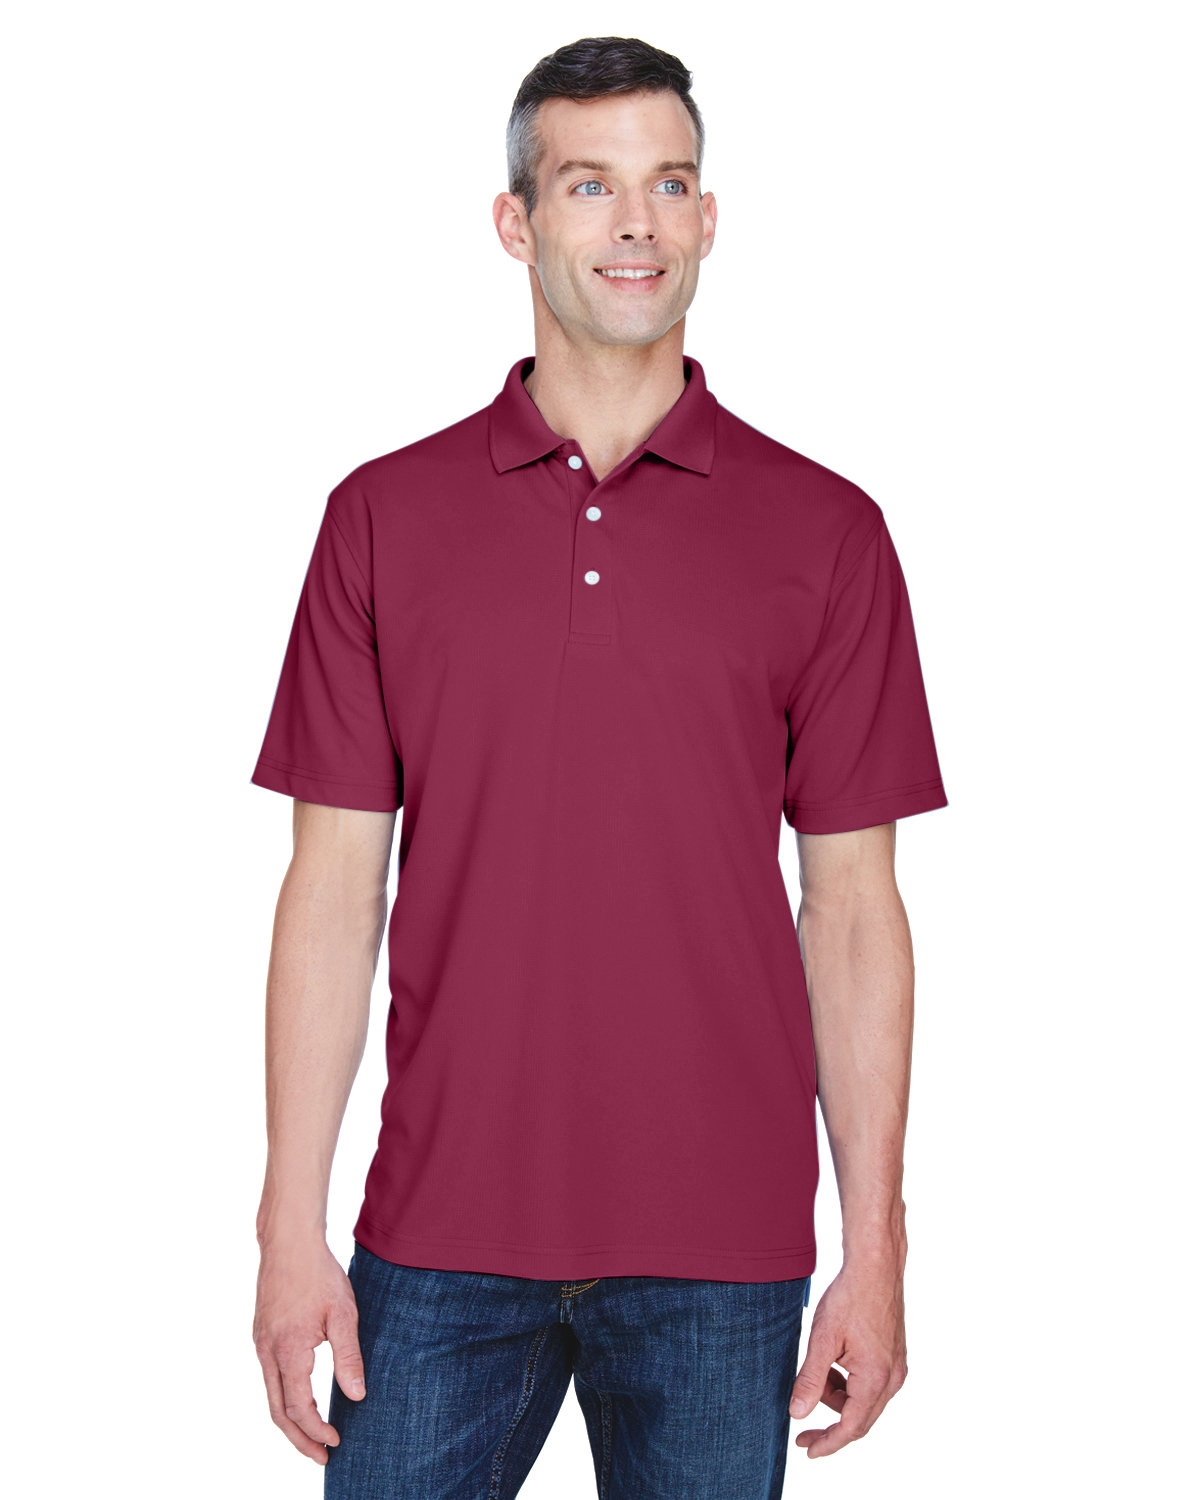 UltraClub Men's Cool & Dry Stain-Release Performance Polo MAROON